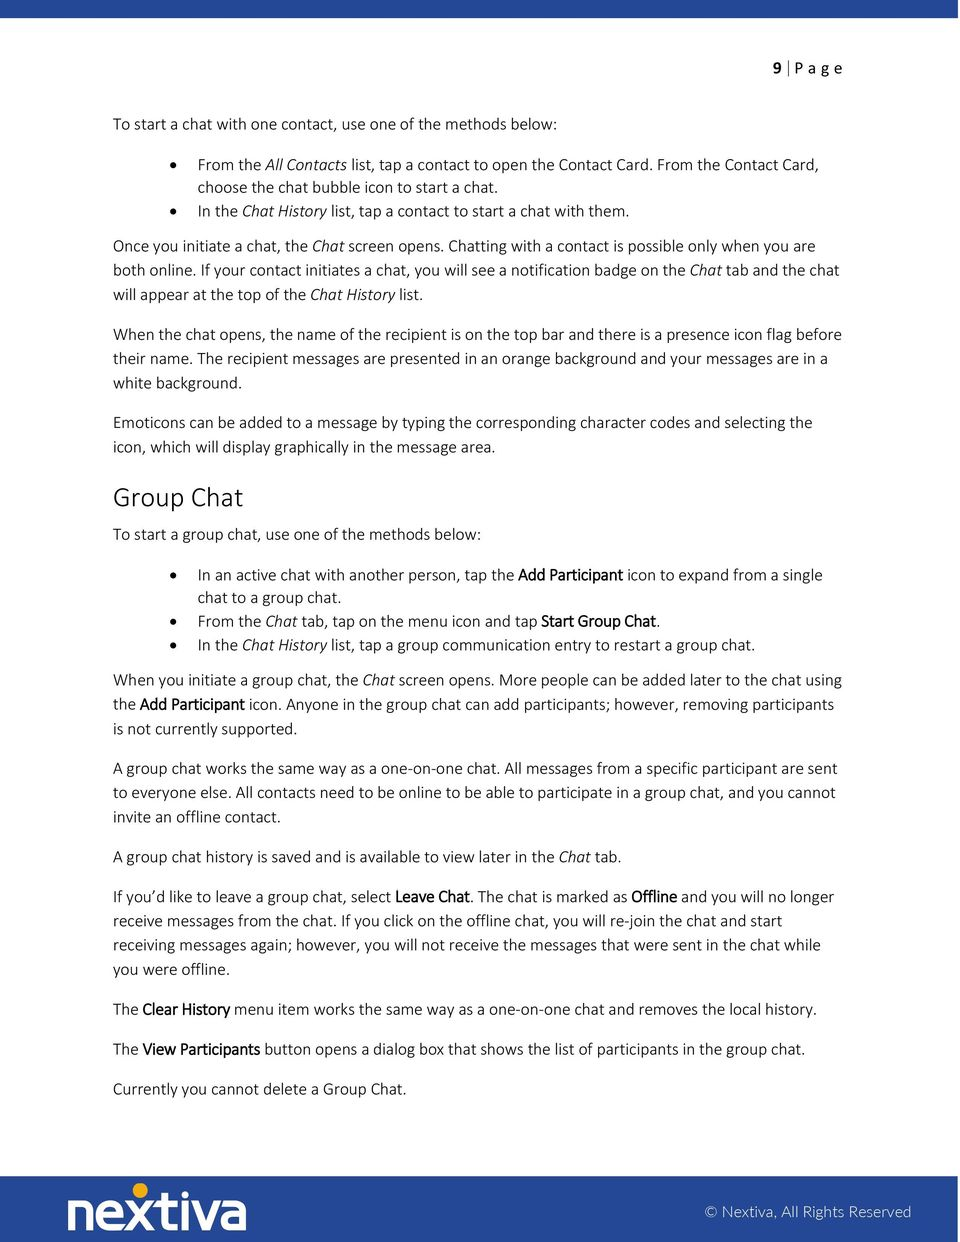 NEXTIVA APP Android User Guide - PDF